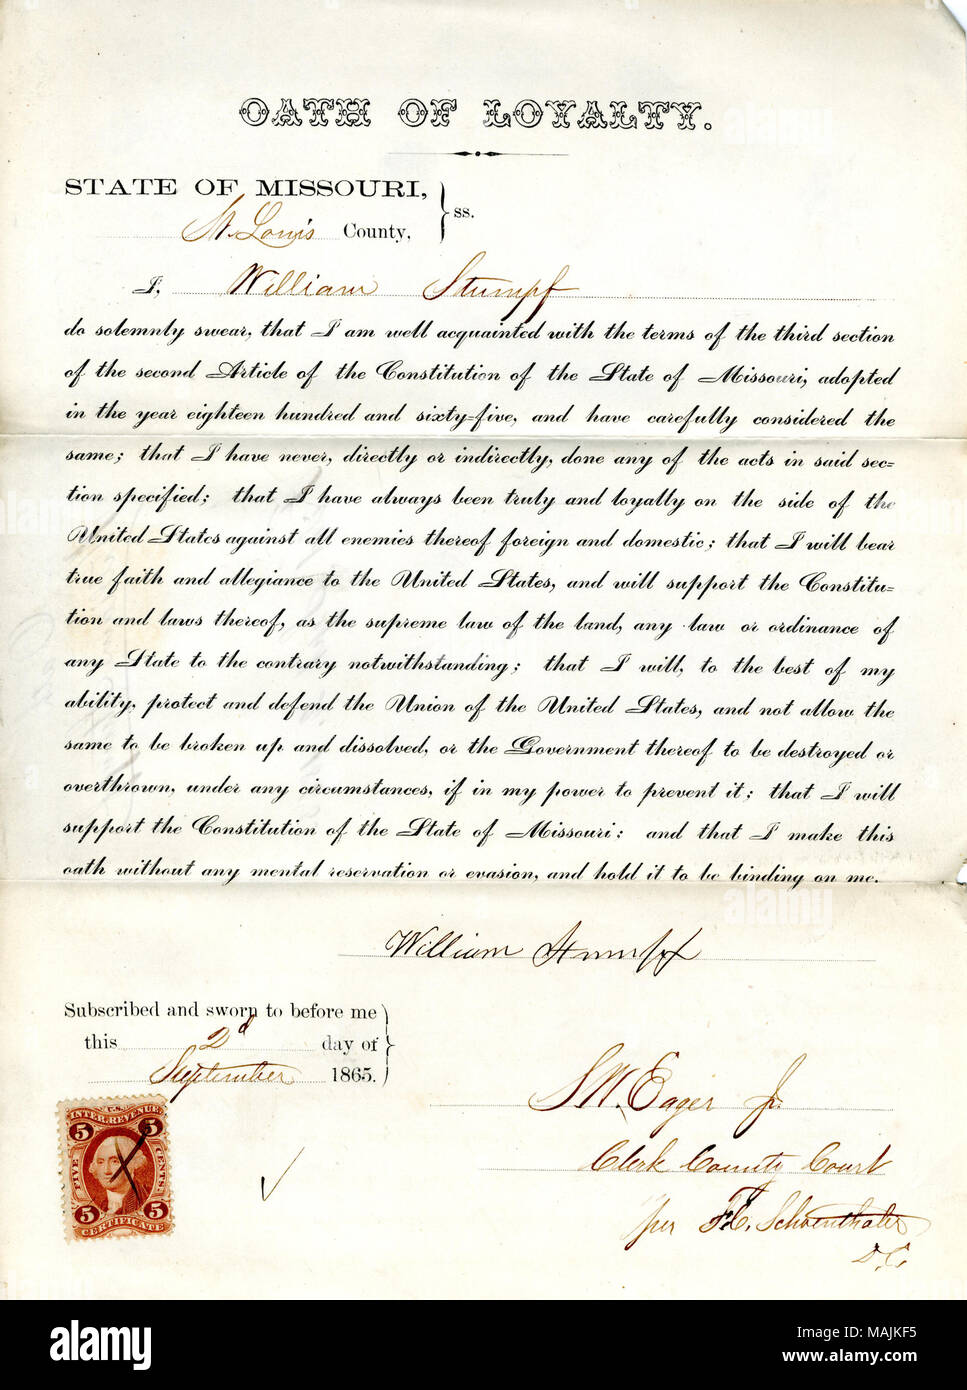 Swears oath of allegiance to the Government of the United States and the State of Missouri. Title: Loyalty oath of William Stumpf of Missouri, County of St. Louis  . 2 September 1865. Stumpf, W. Stock Photo